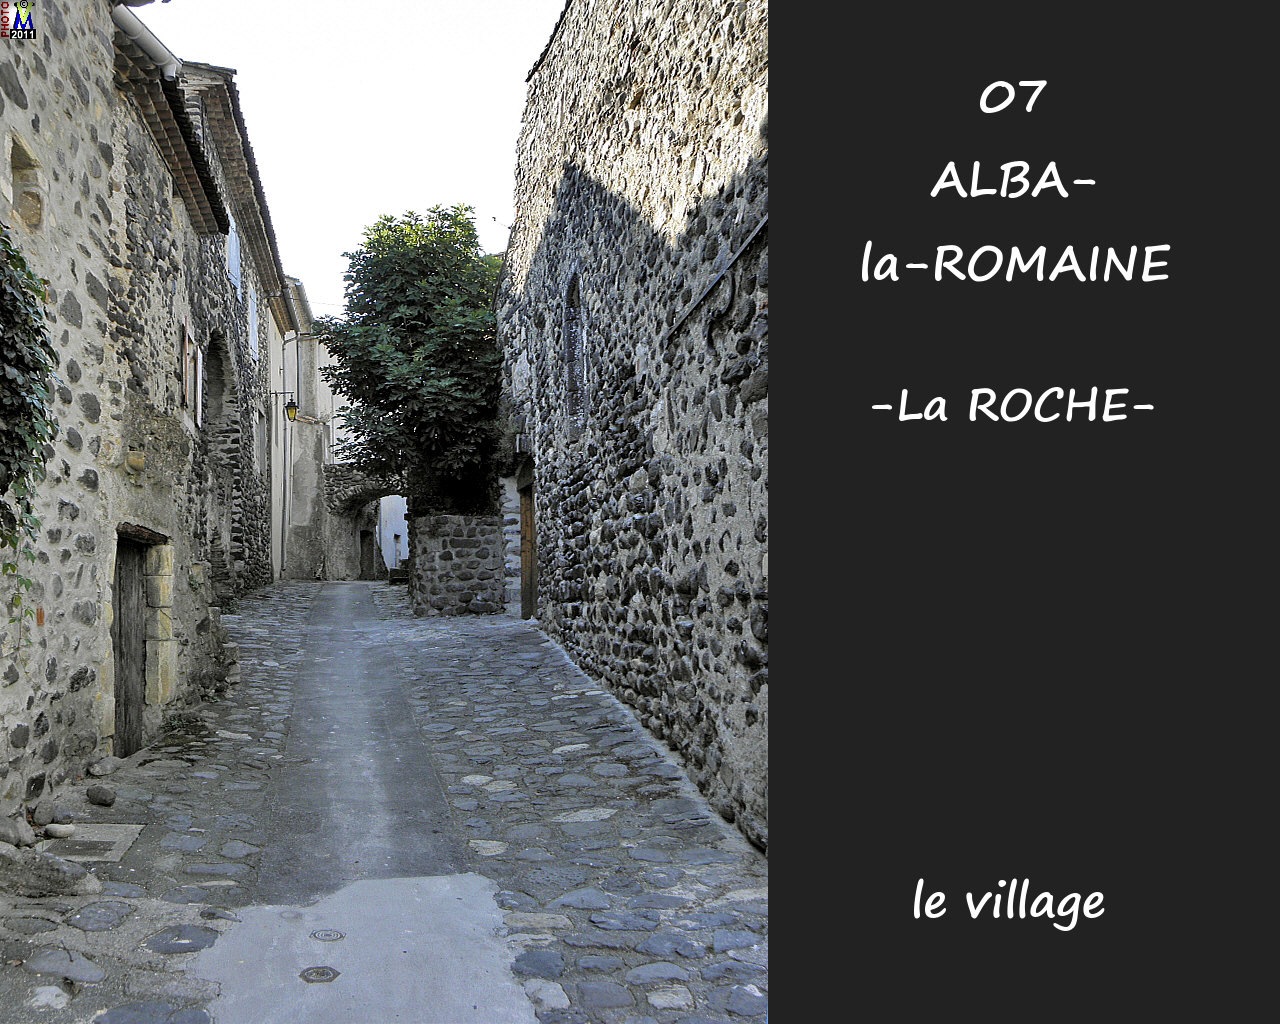 07ALBA-ROMAINEzROCHE_village_108.jpg